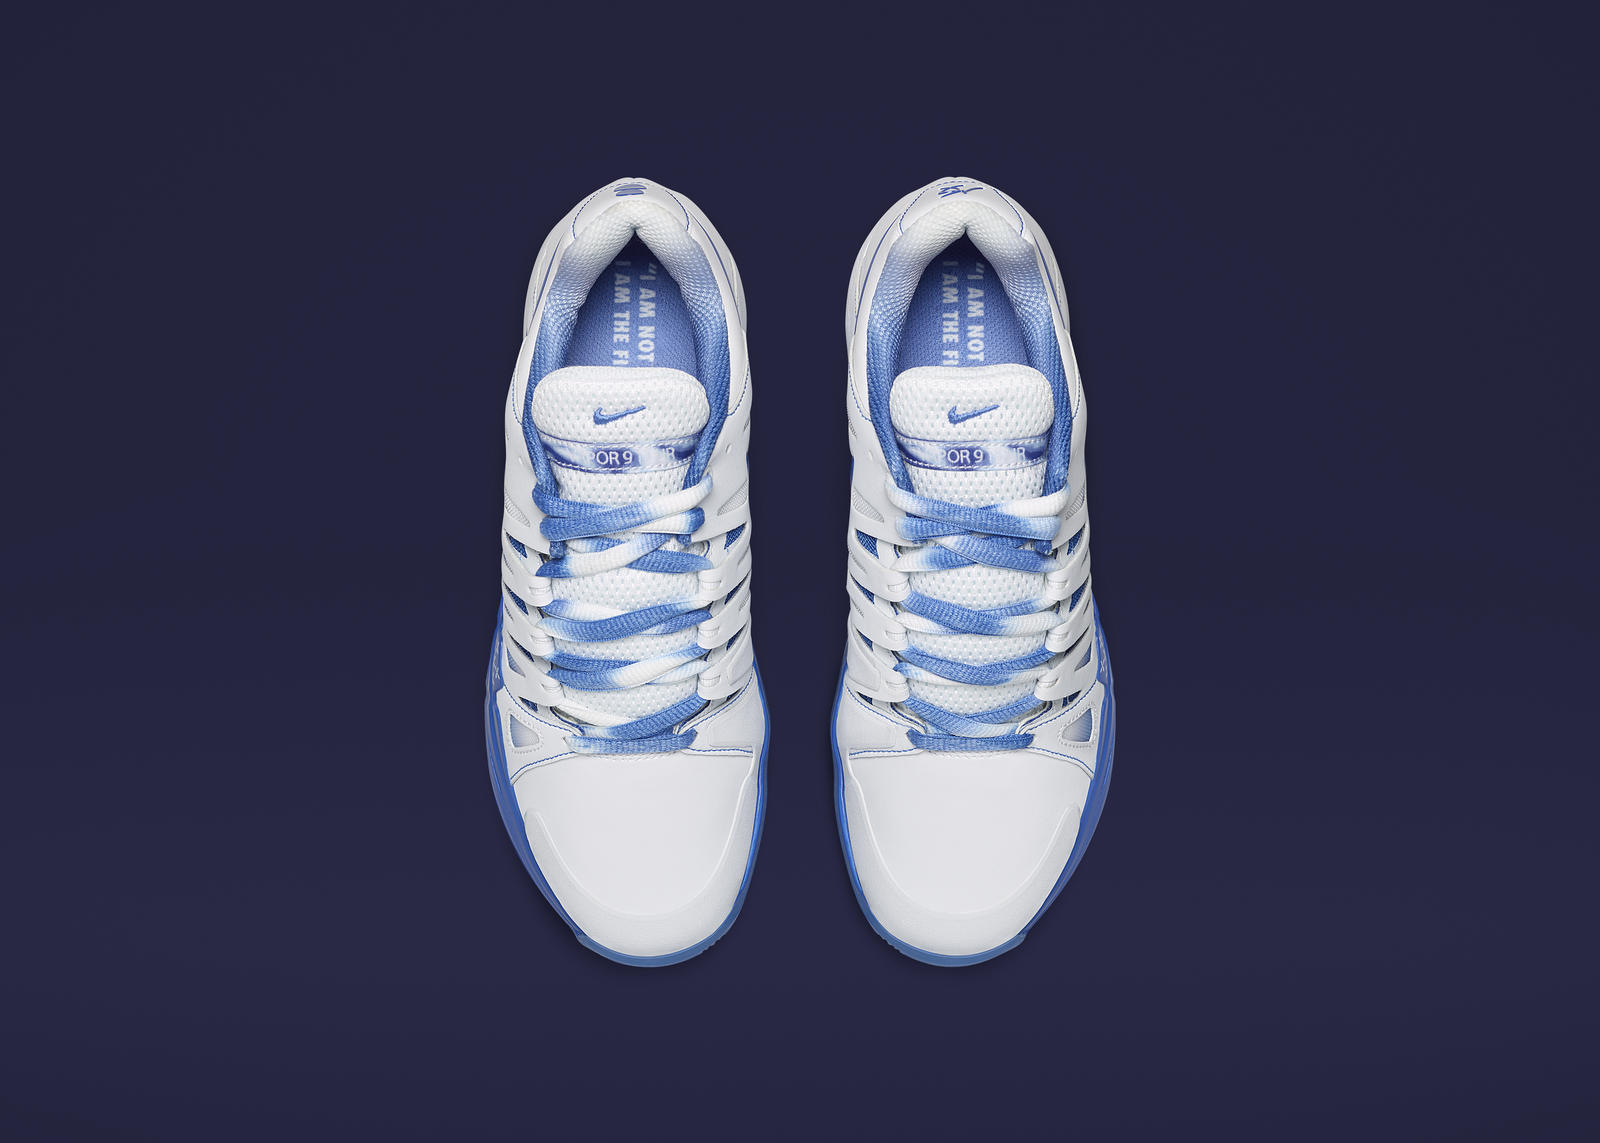 Nikecourt zoom vapor 9 tour x colette 2 rectangle 1600